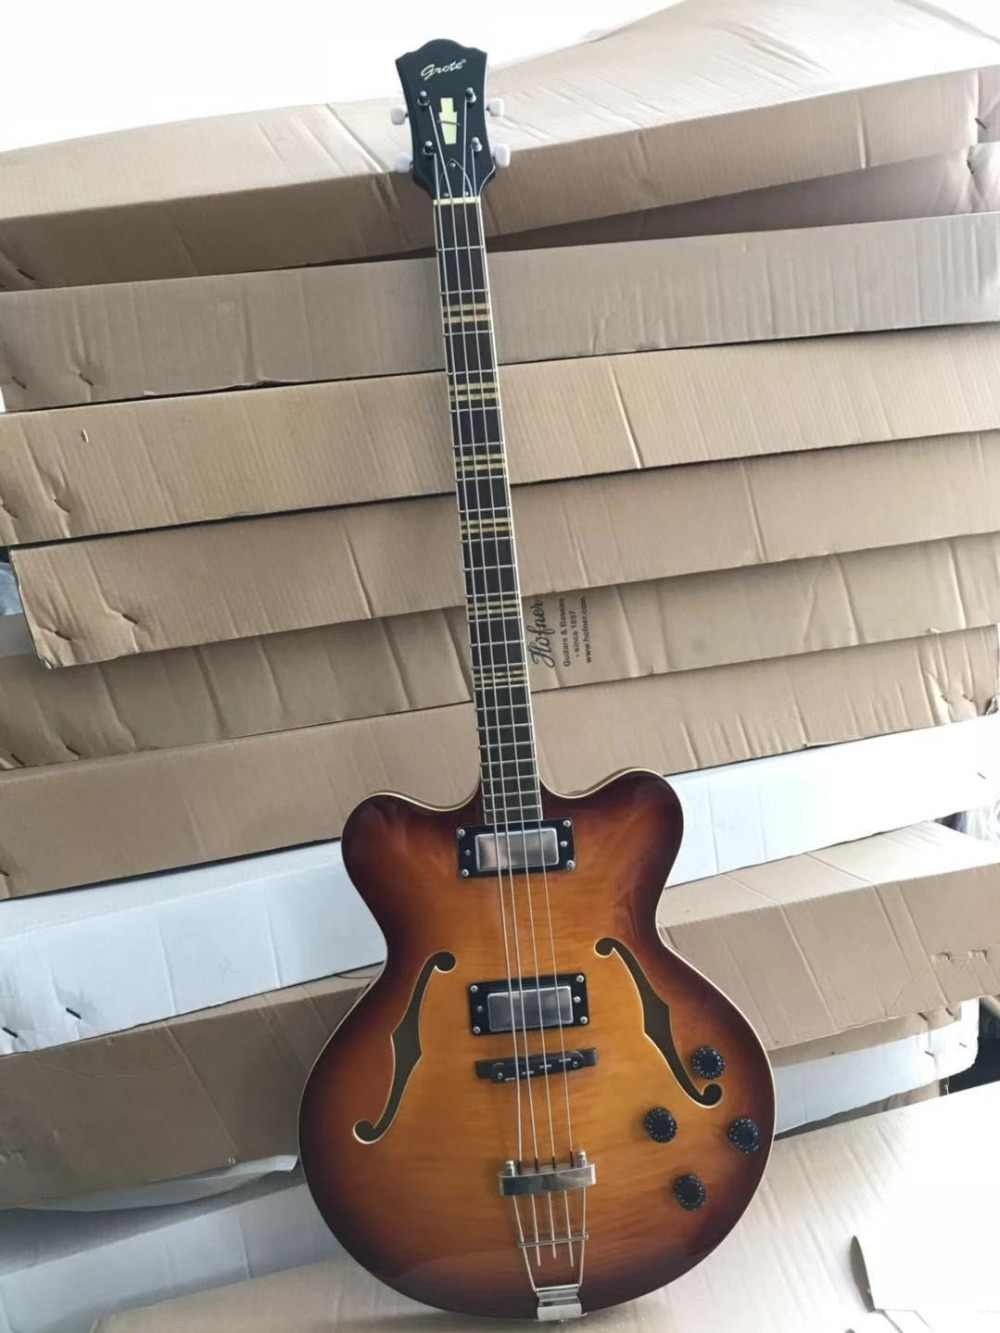 hight resolution of 2019 hofner bass very thin grote htc 500 7 sb staple top